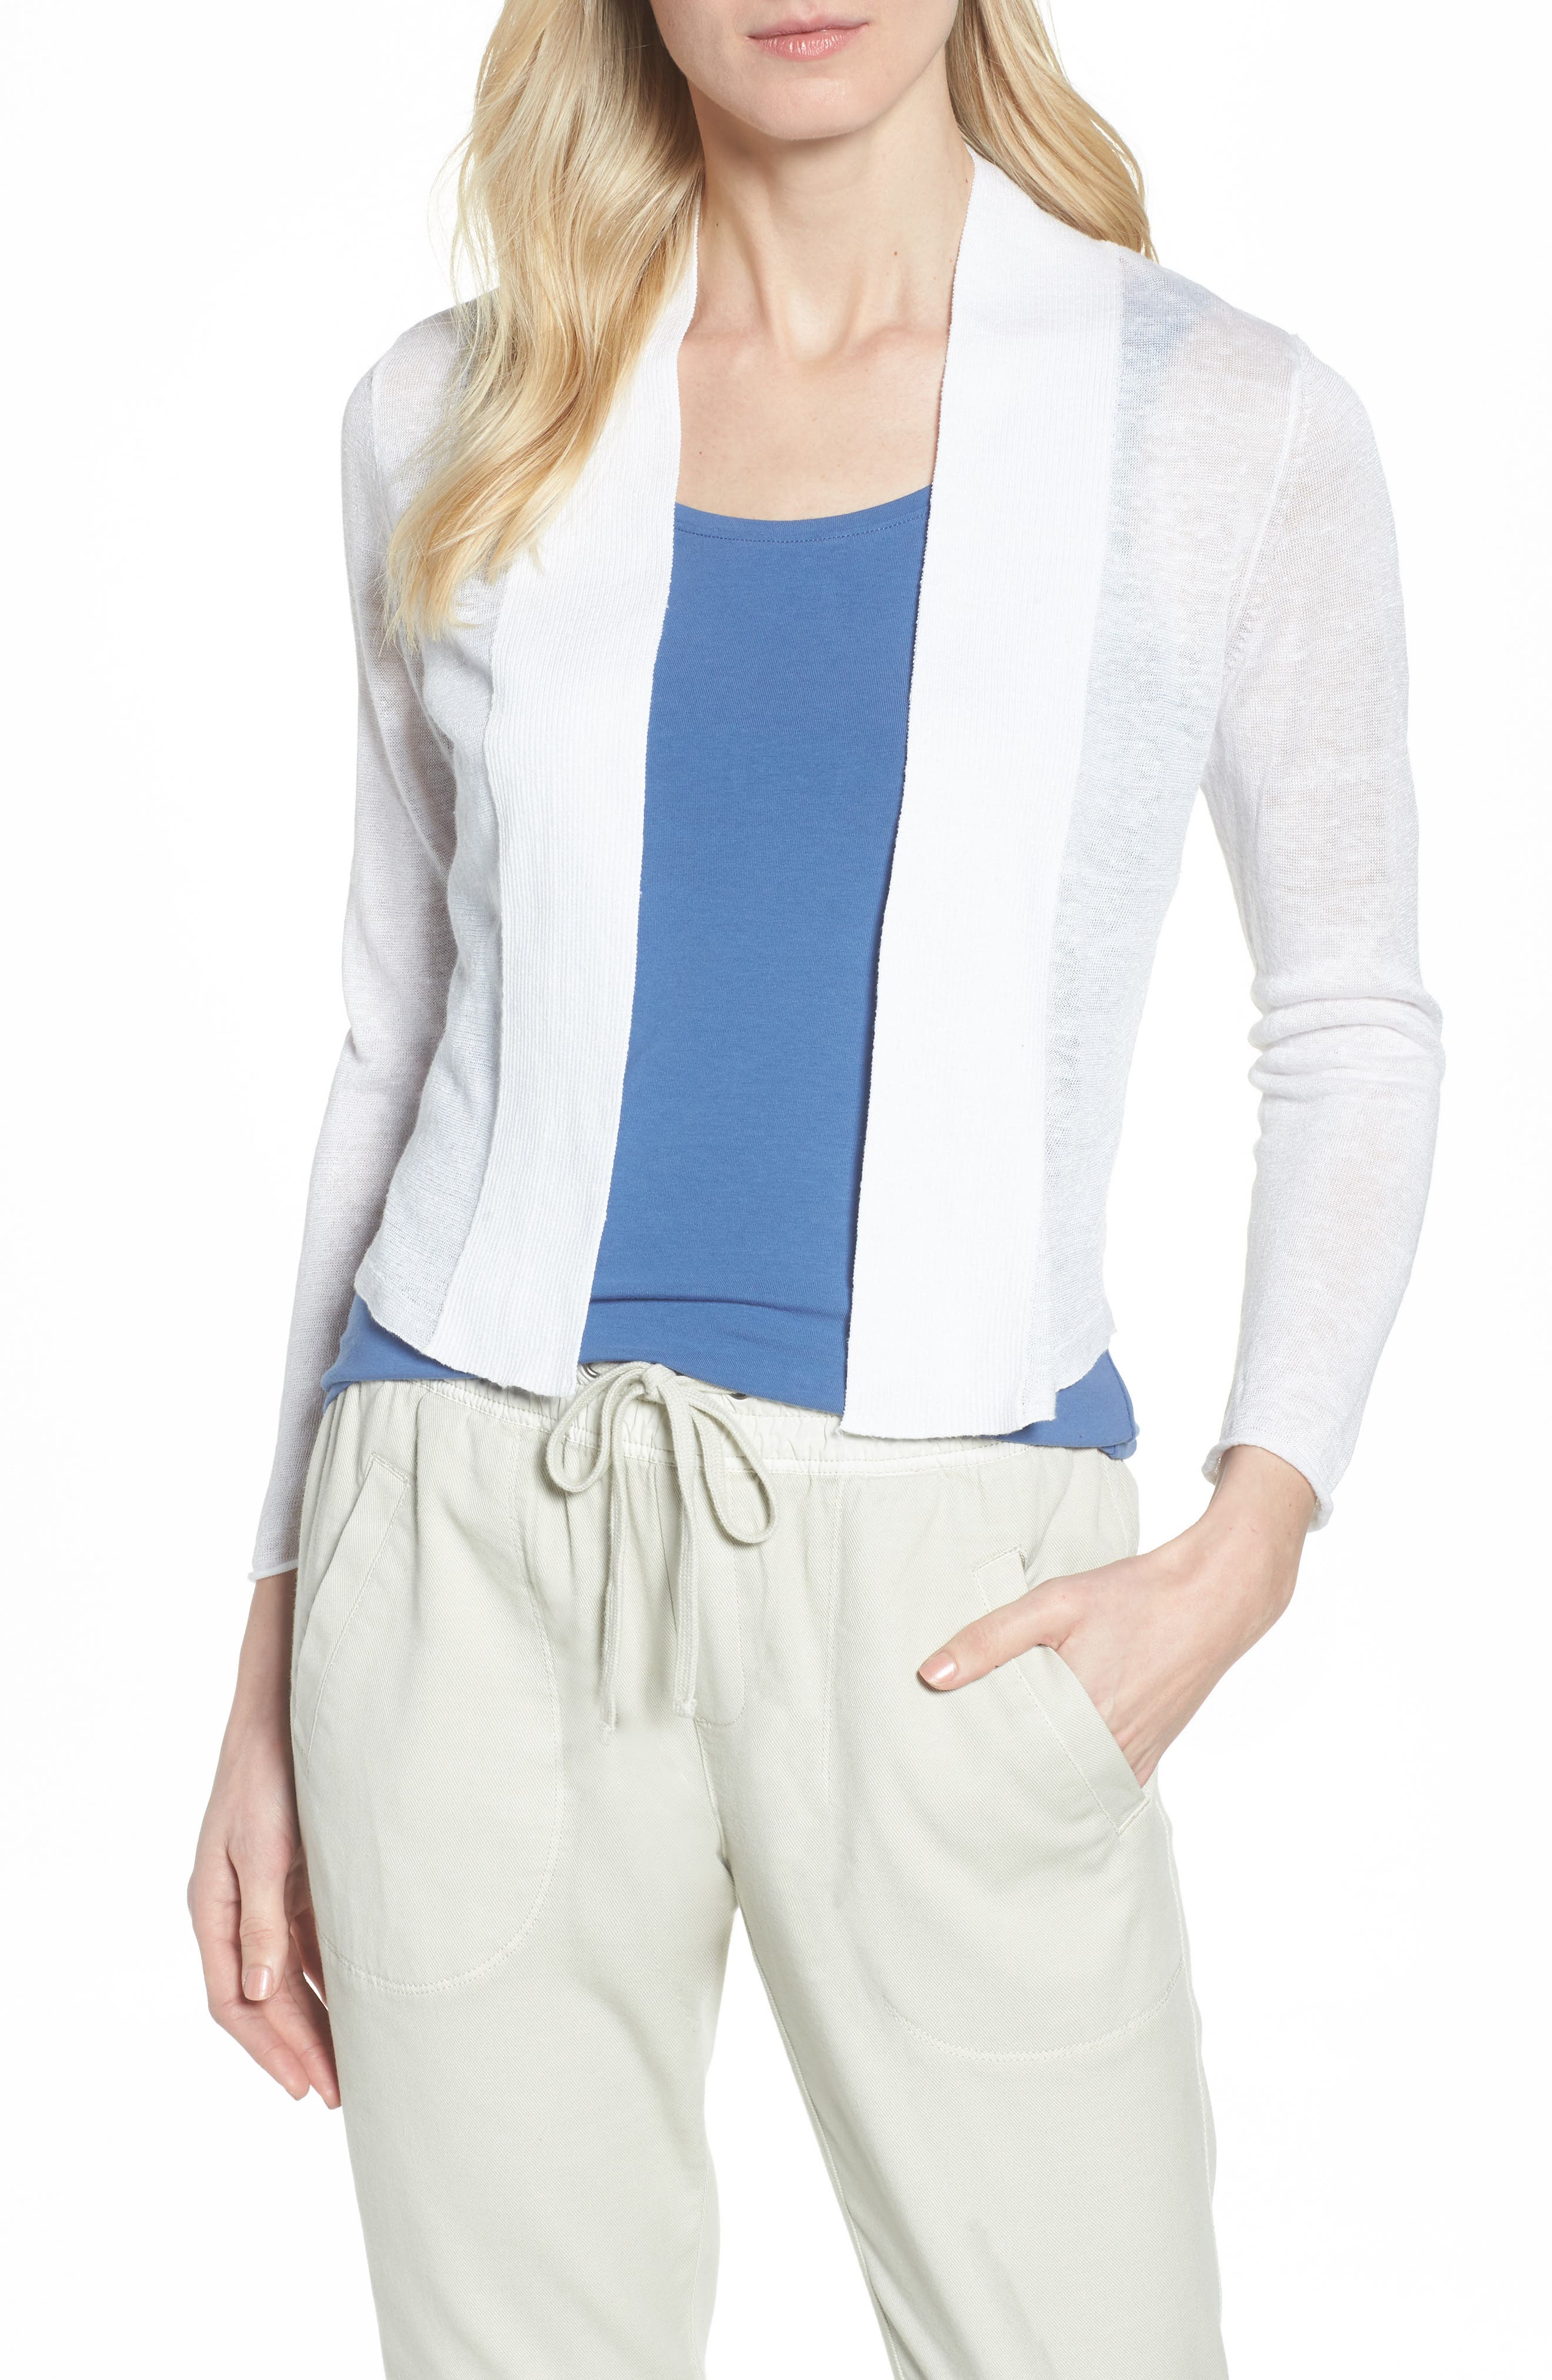 NIC + ZOE Daybreak Open Front Cardigan,                             Main thumbnail 1, color,                             Paper White